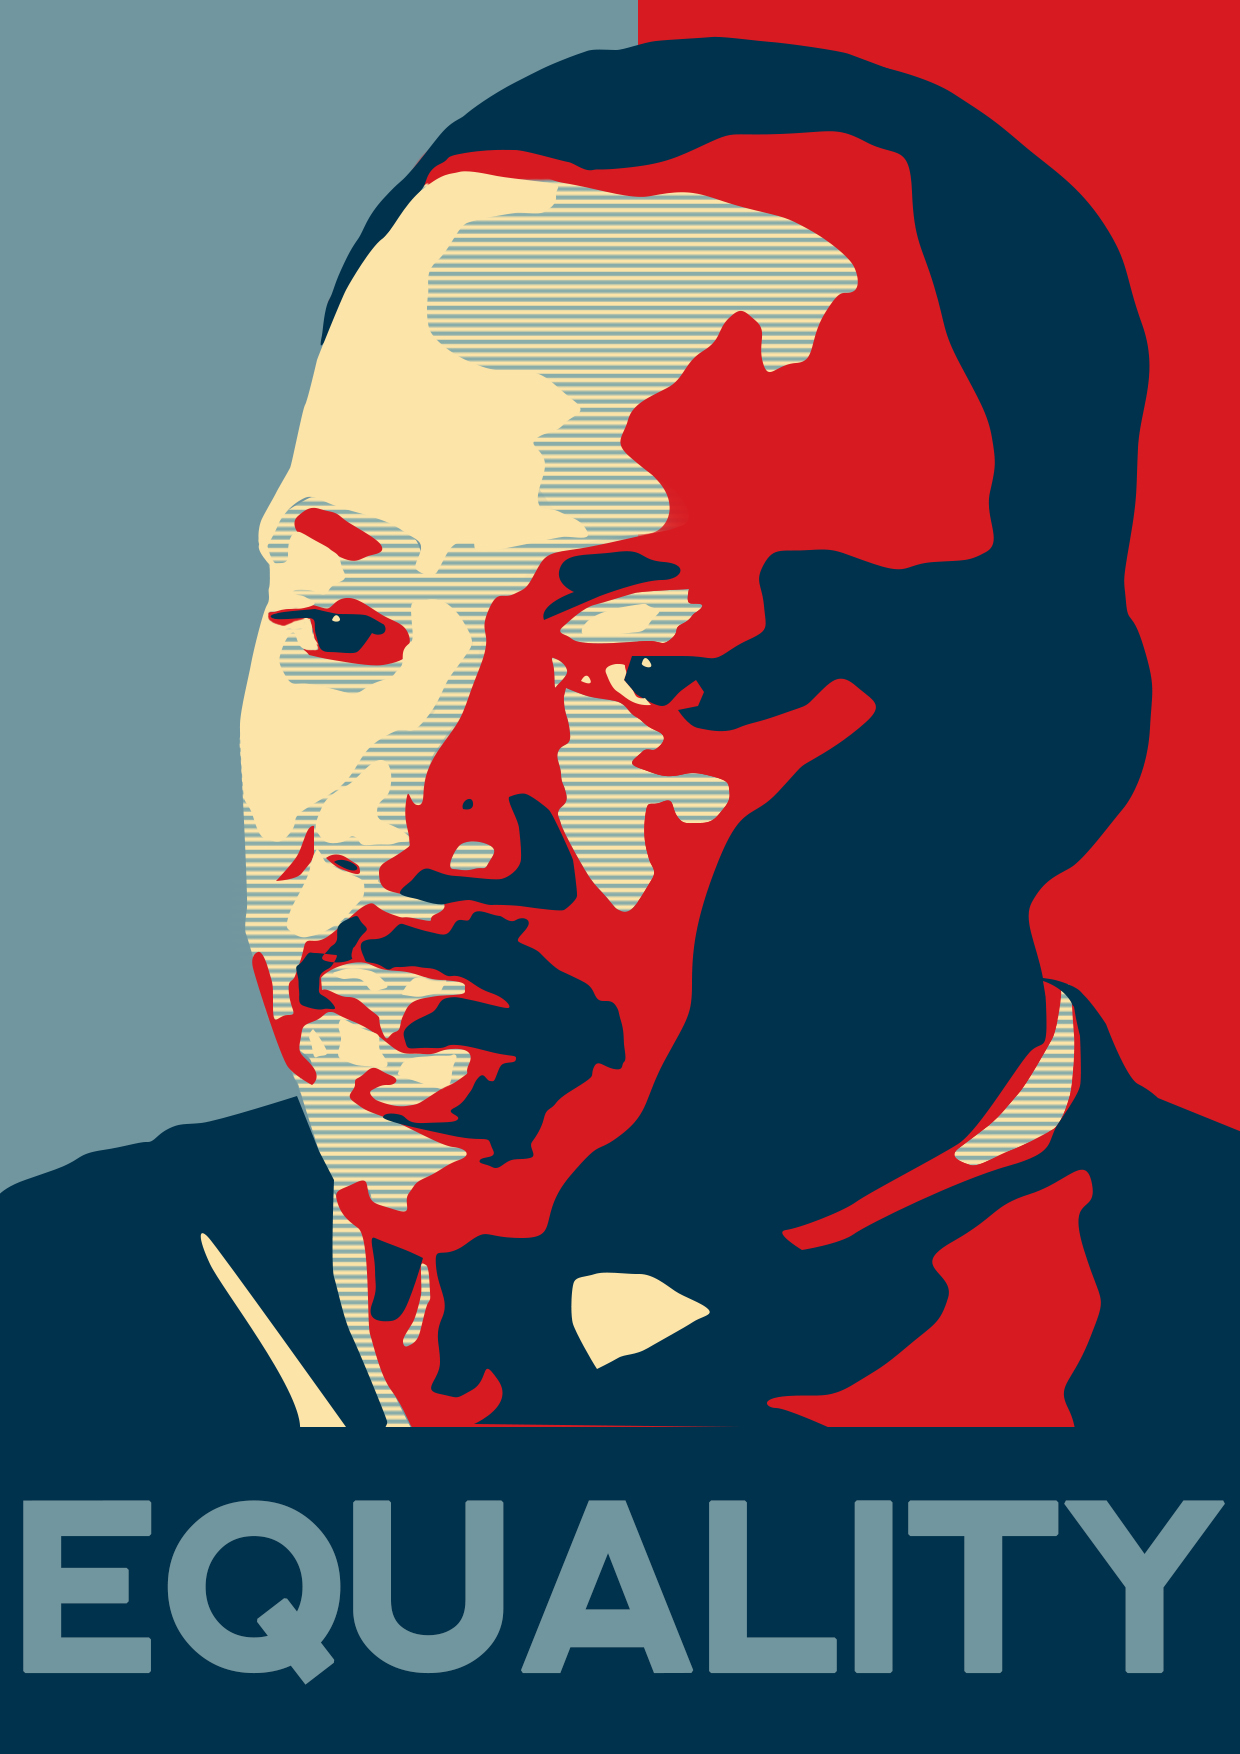 Free Download Martin Luther King Poster By Malteblom 1240x1754